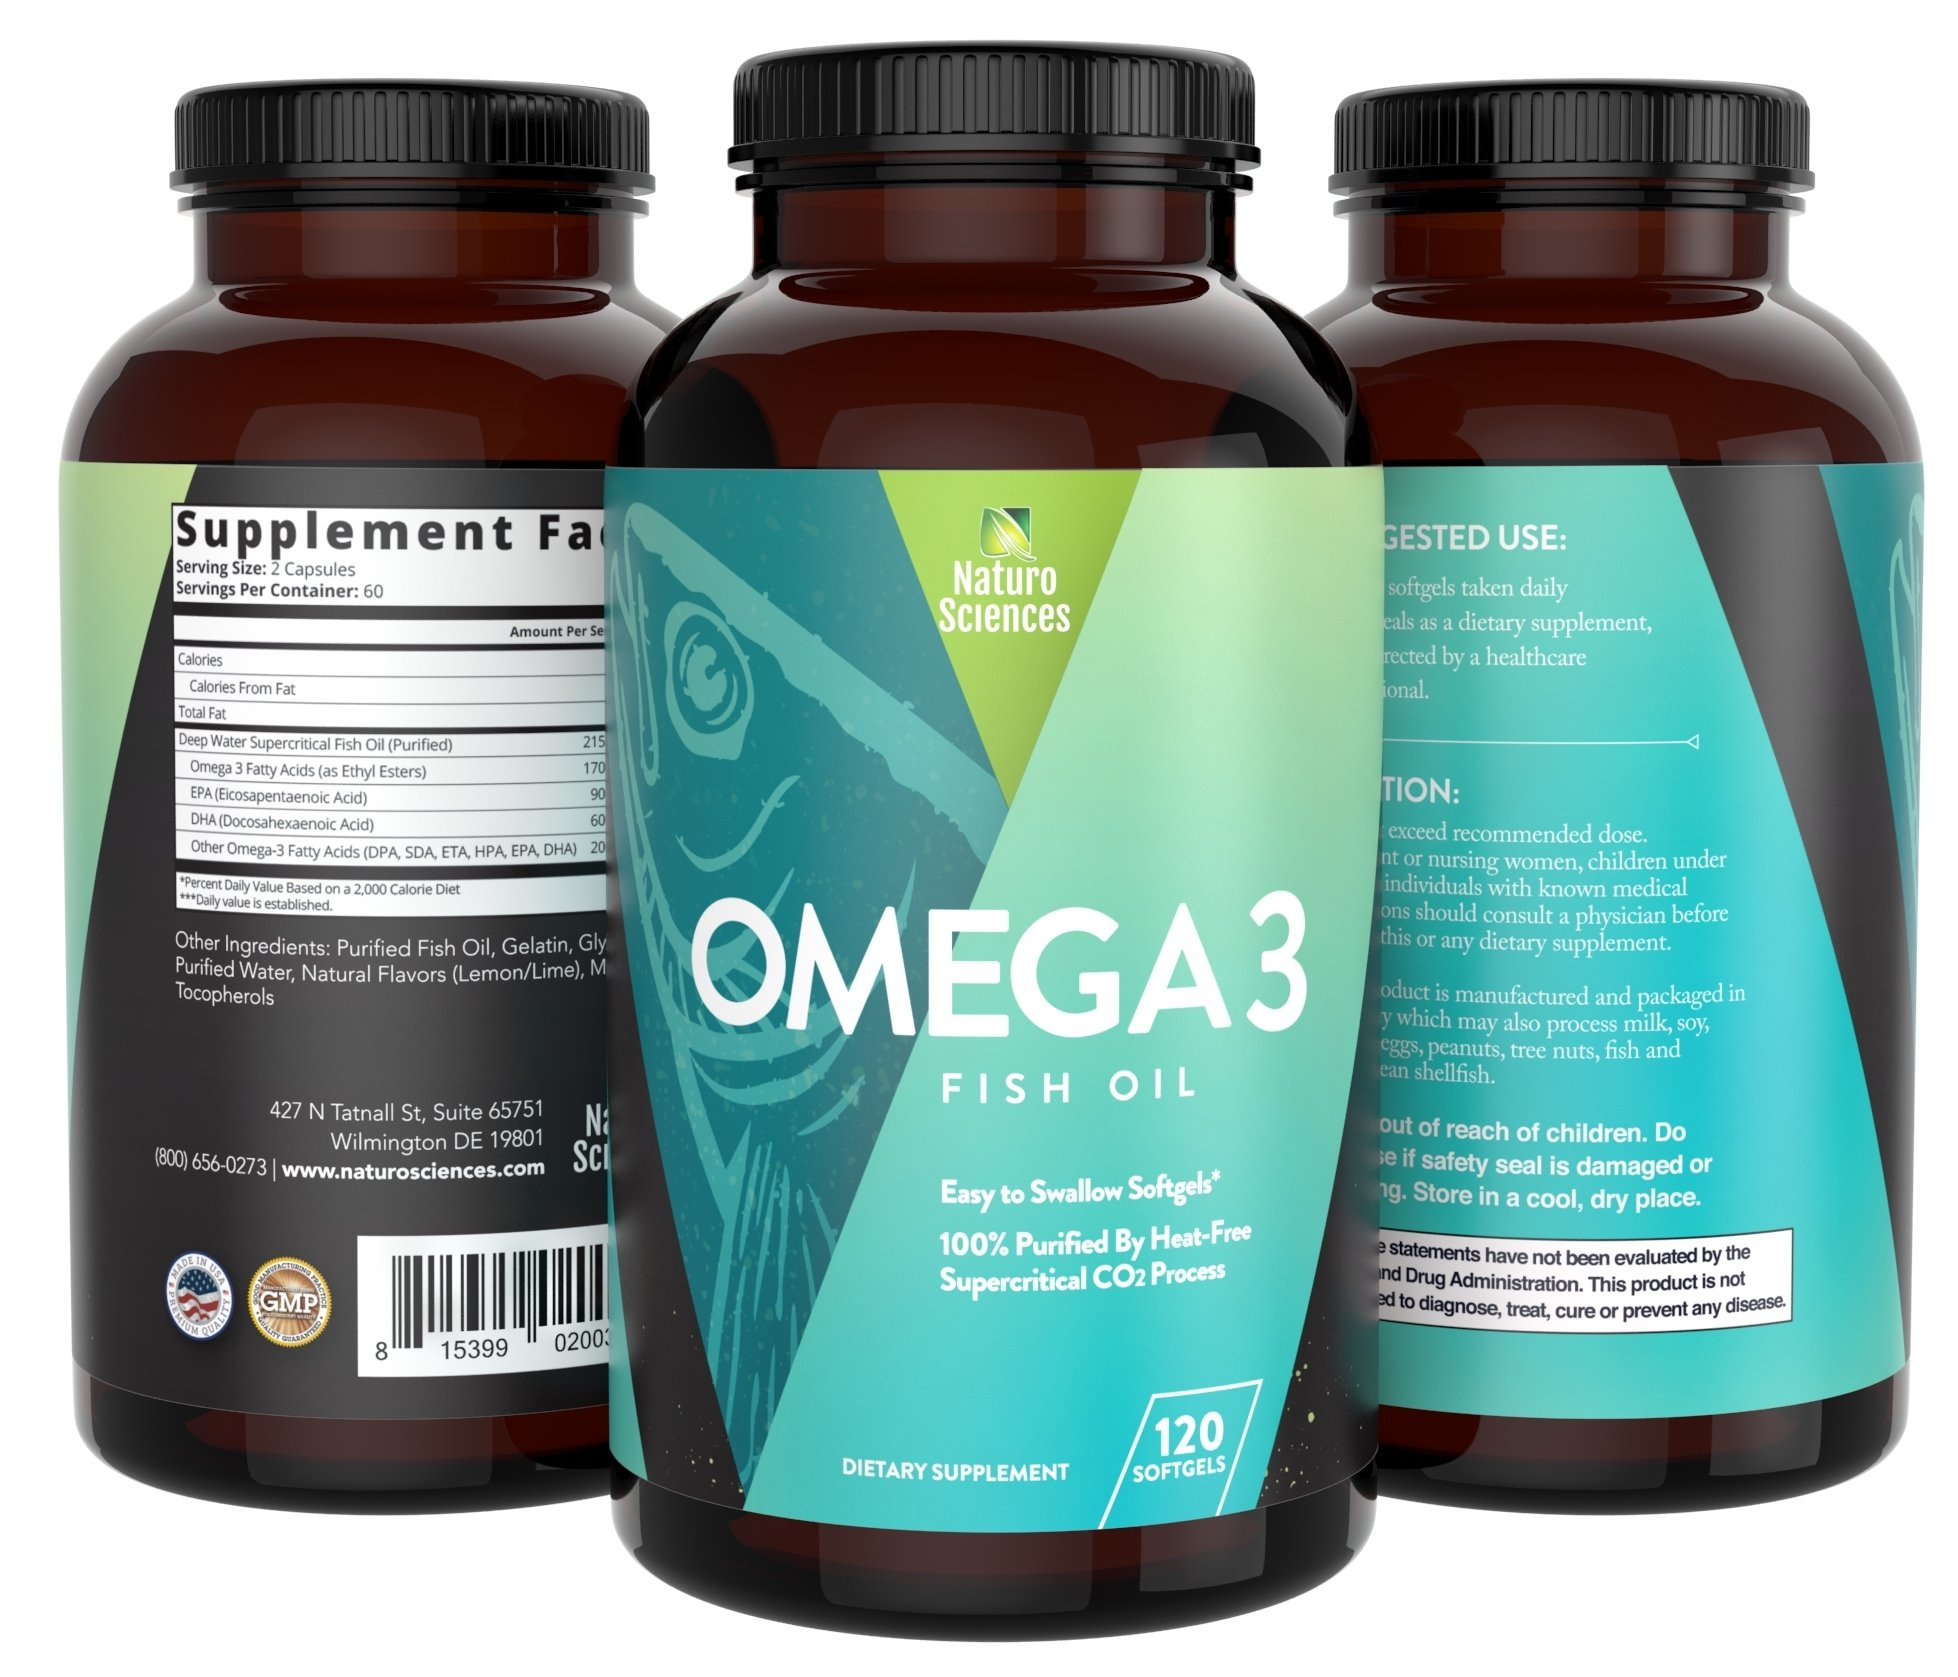 1700mg of Omega 3 - Essential Fatty Acid Fish Oil Supplement - IFOS 5 Star Certified, Best EPA 900mg & DHA 600mg Per Serving - Supercritical Process for Quality Purified Omega-3 120 Count- Pack of 3 by Naturo Sciences